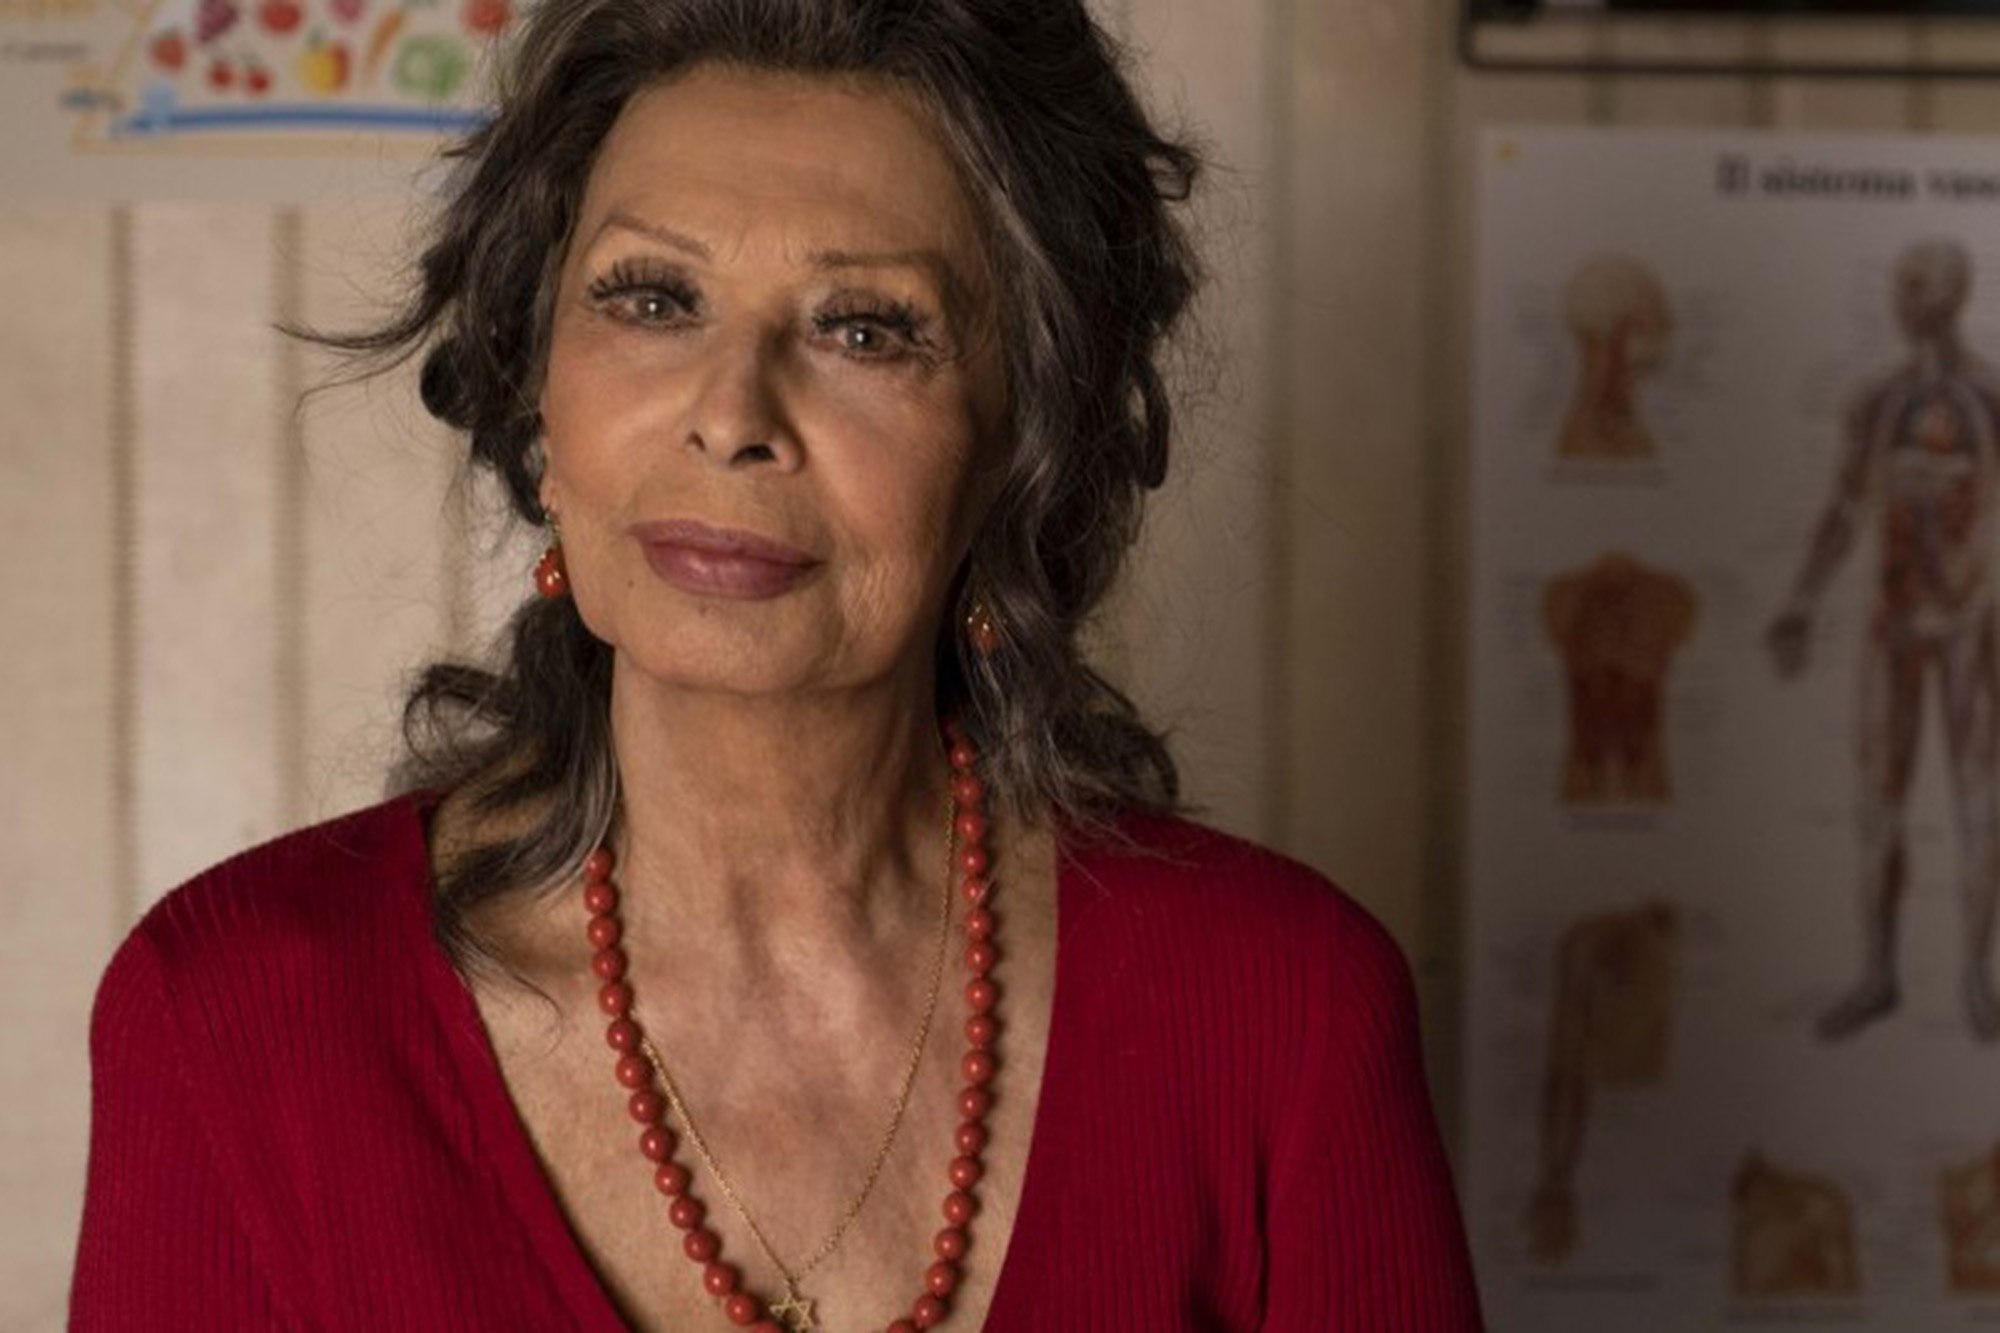 Sophia Loren to star in a movie for the first time in 10 years